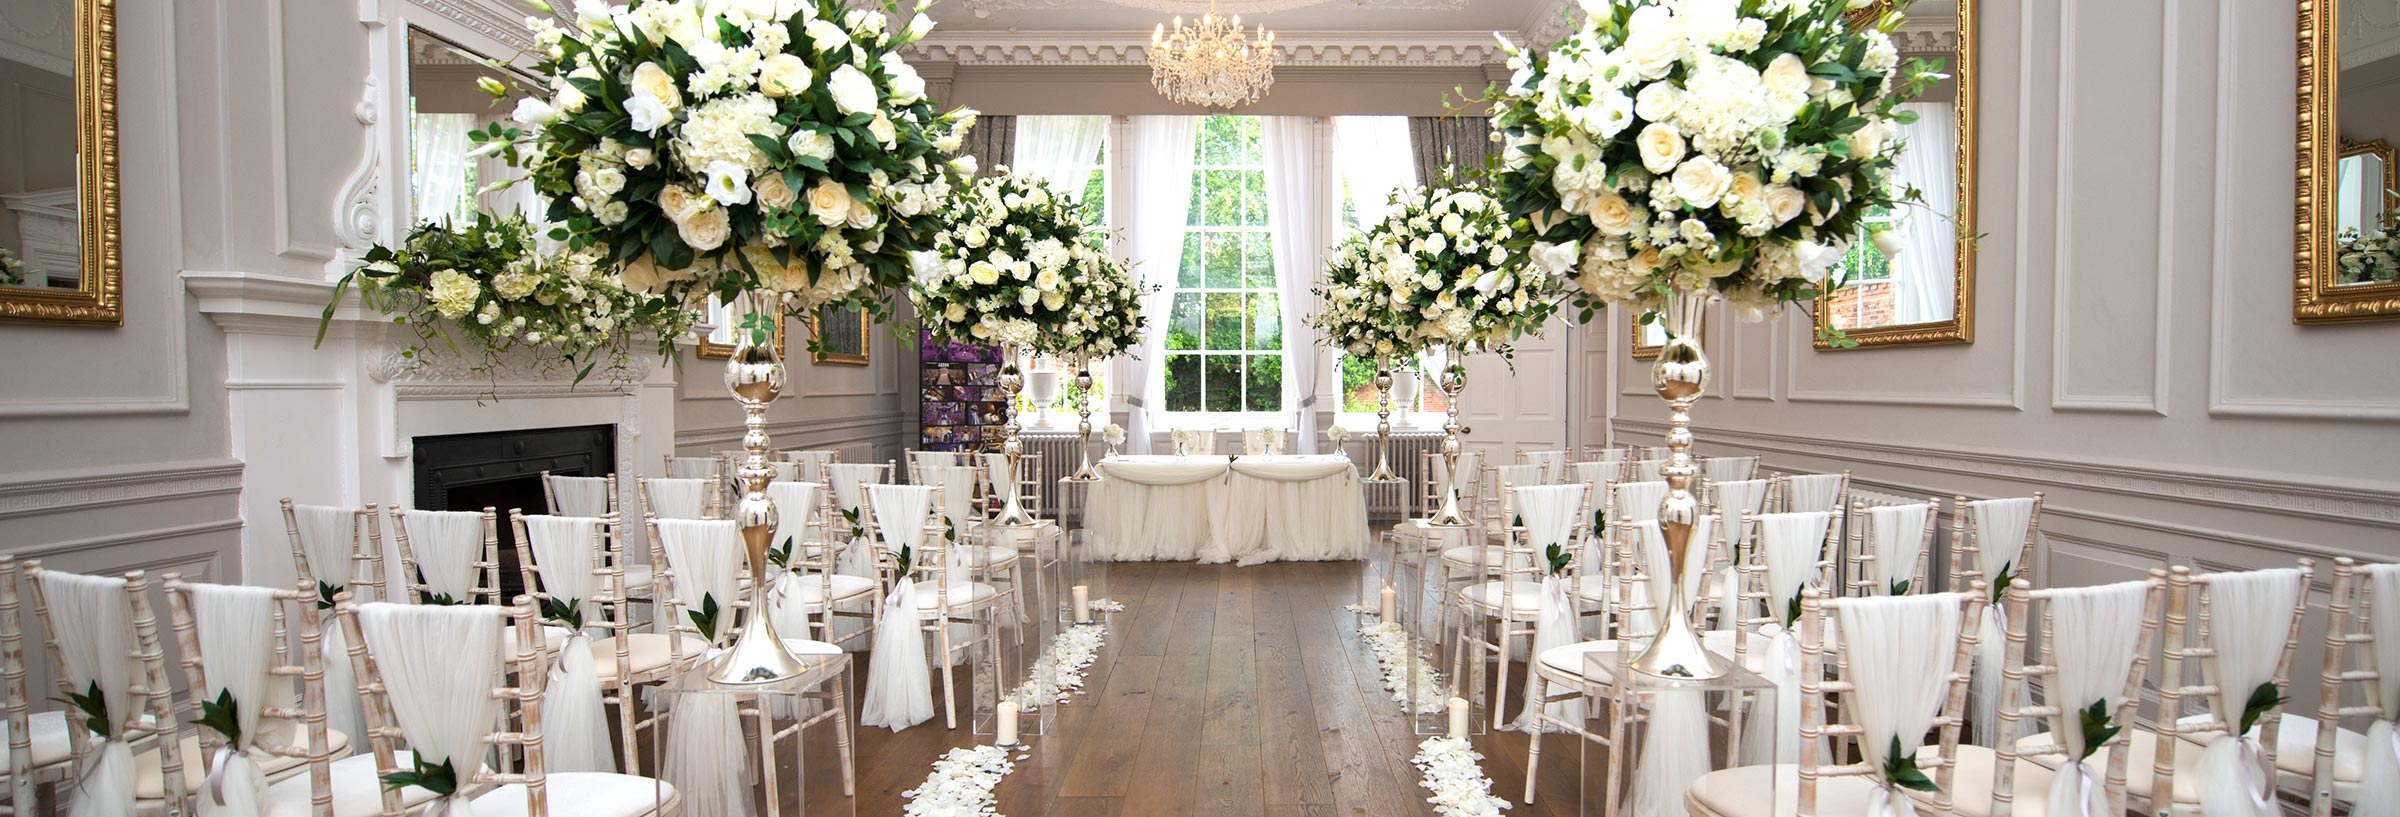 Winter / Spring Wedding Venue